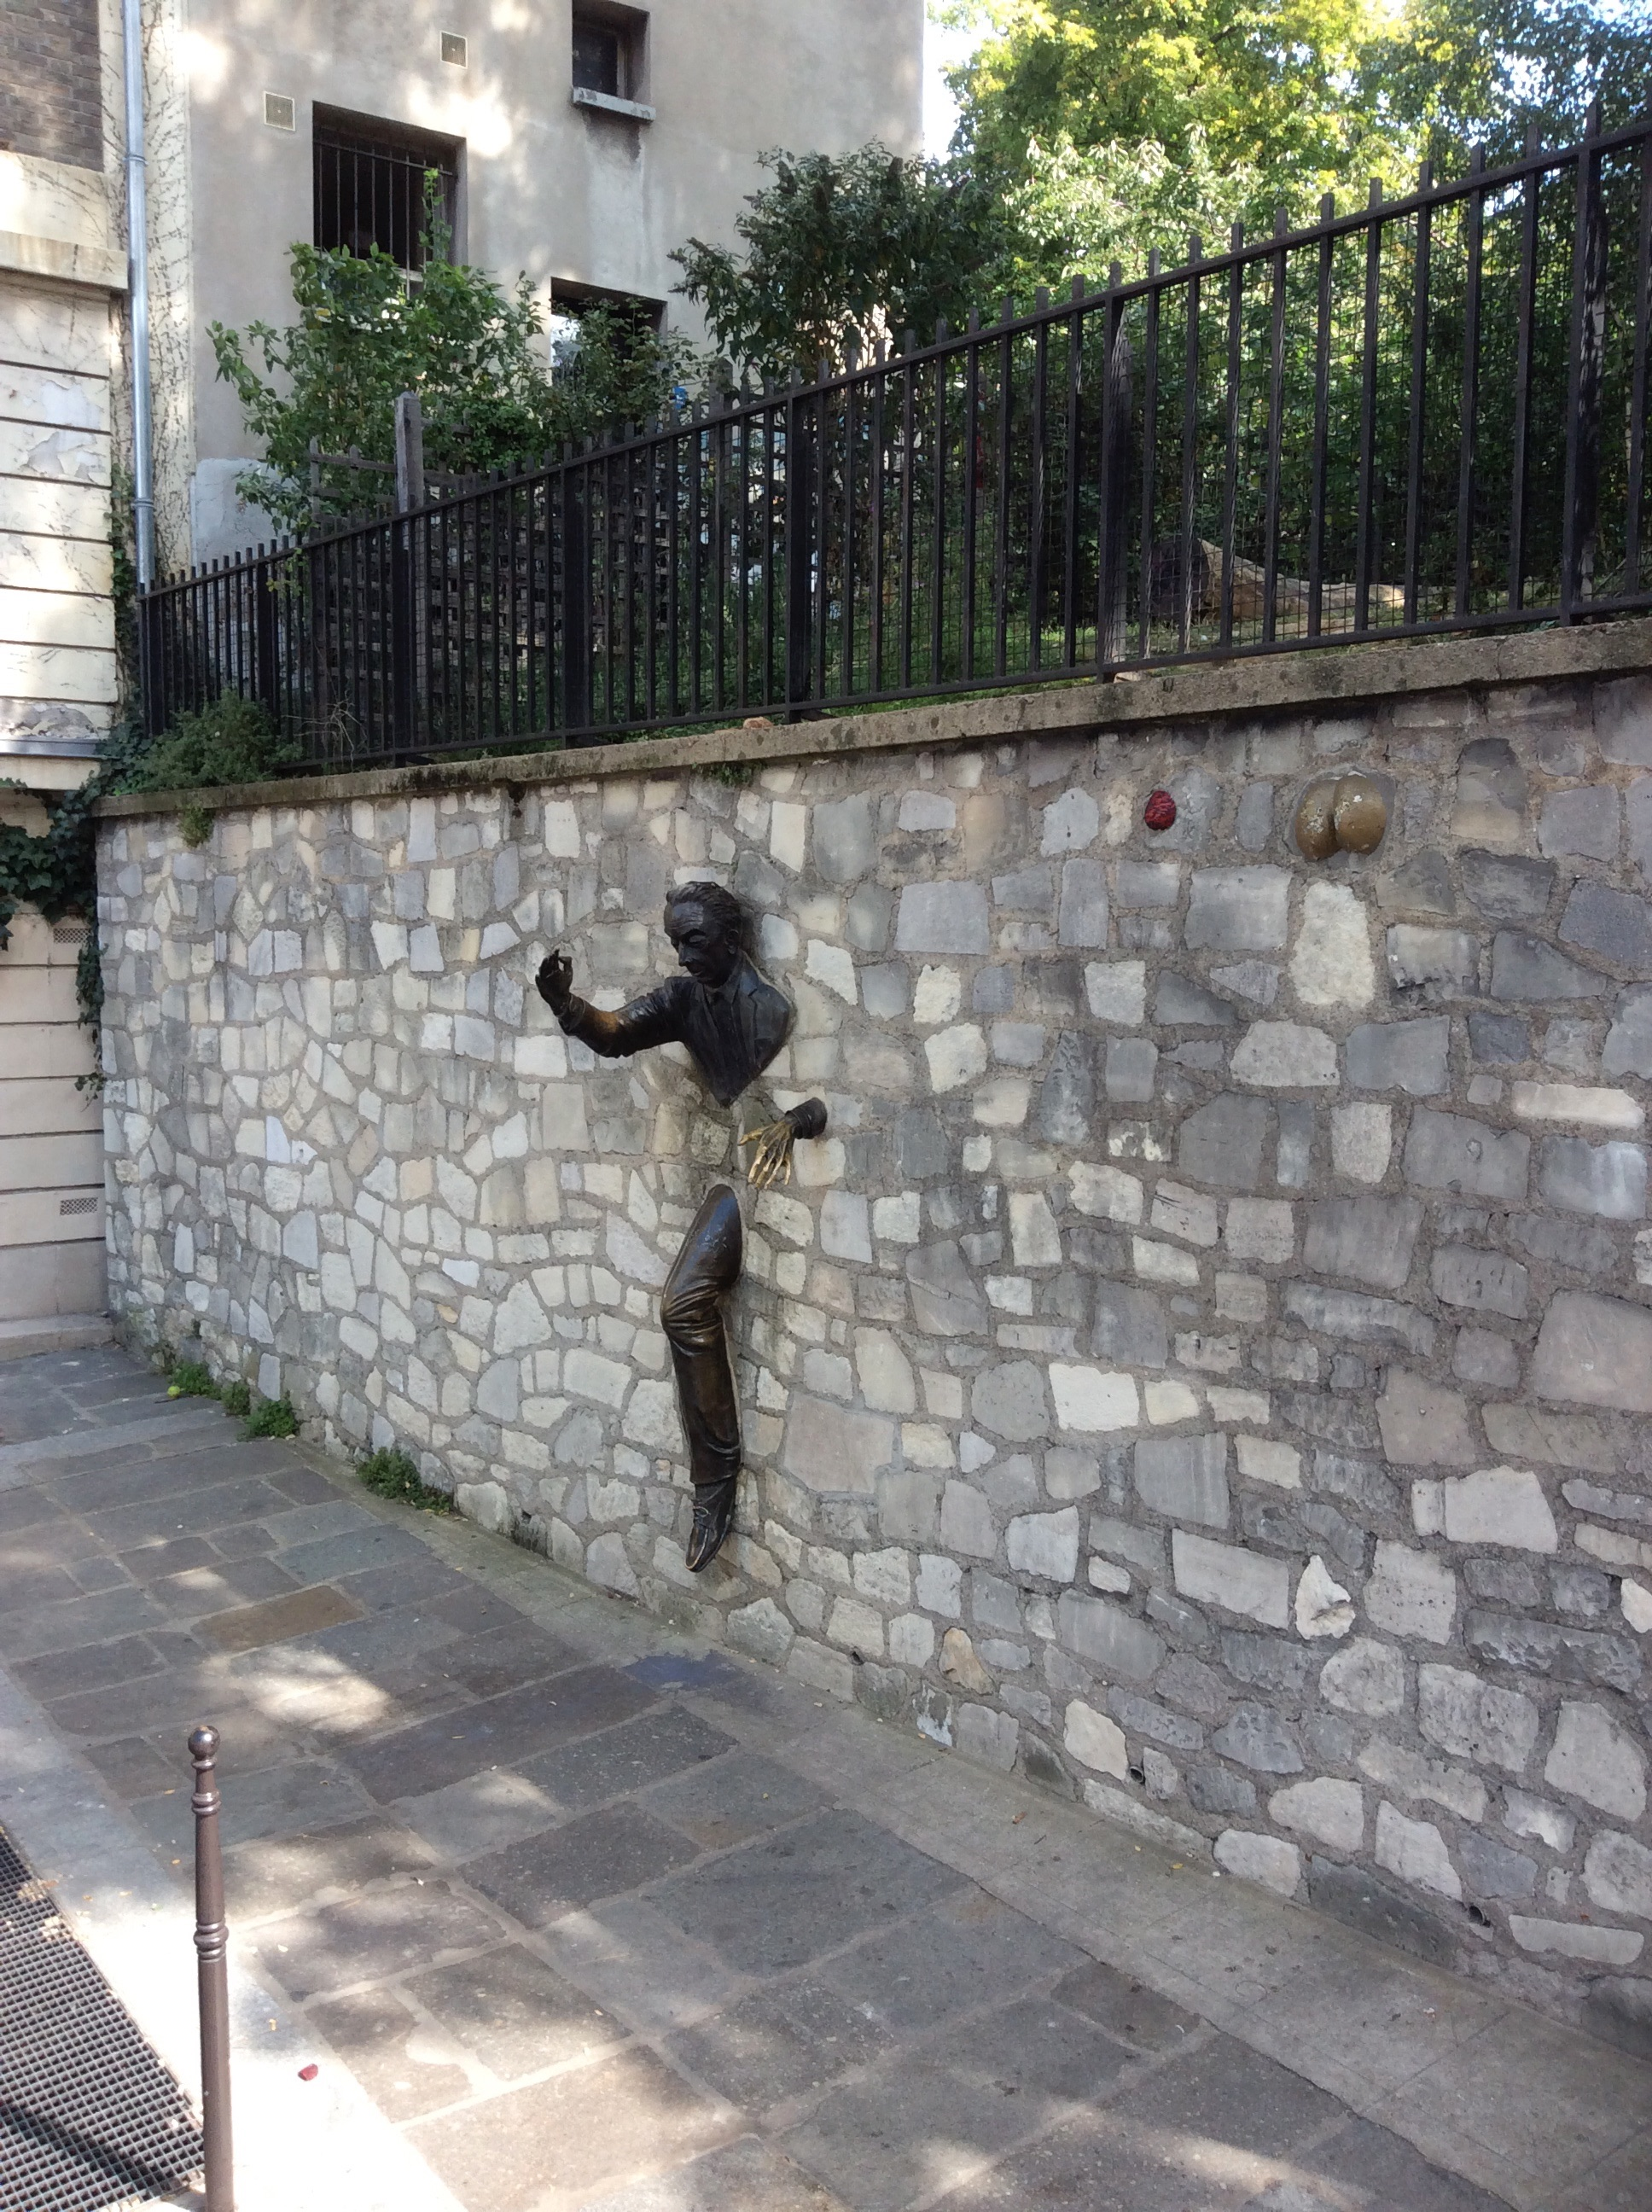 Walking through the Montmartre arrondissement in paris from the Sacre-Coeur to the Moulin rouge we came around a corner to see the man escaping from the wall.  At times we all feel like we are trying to break free.